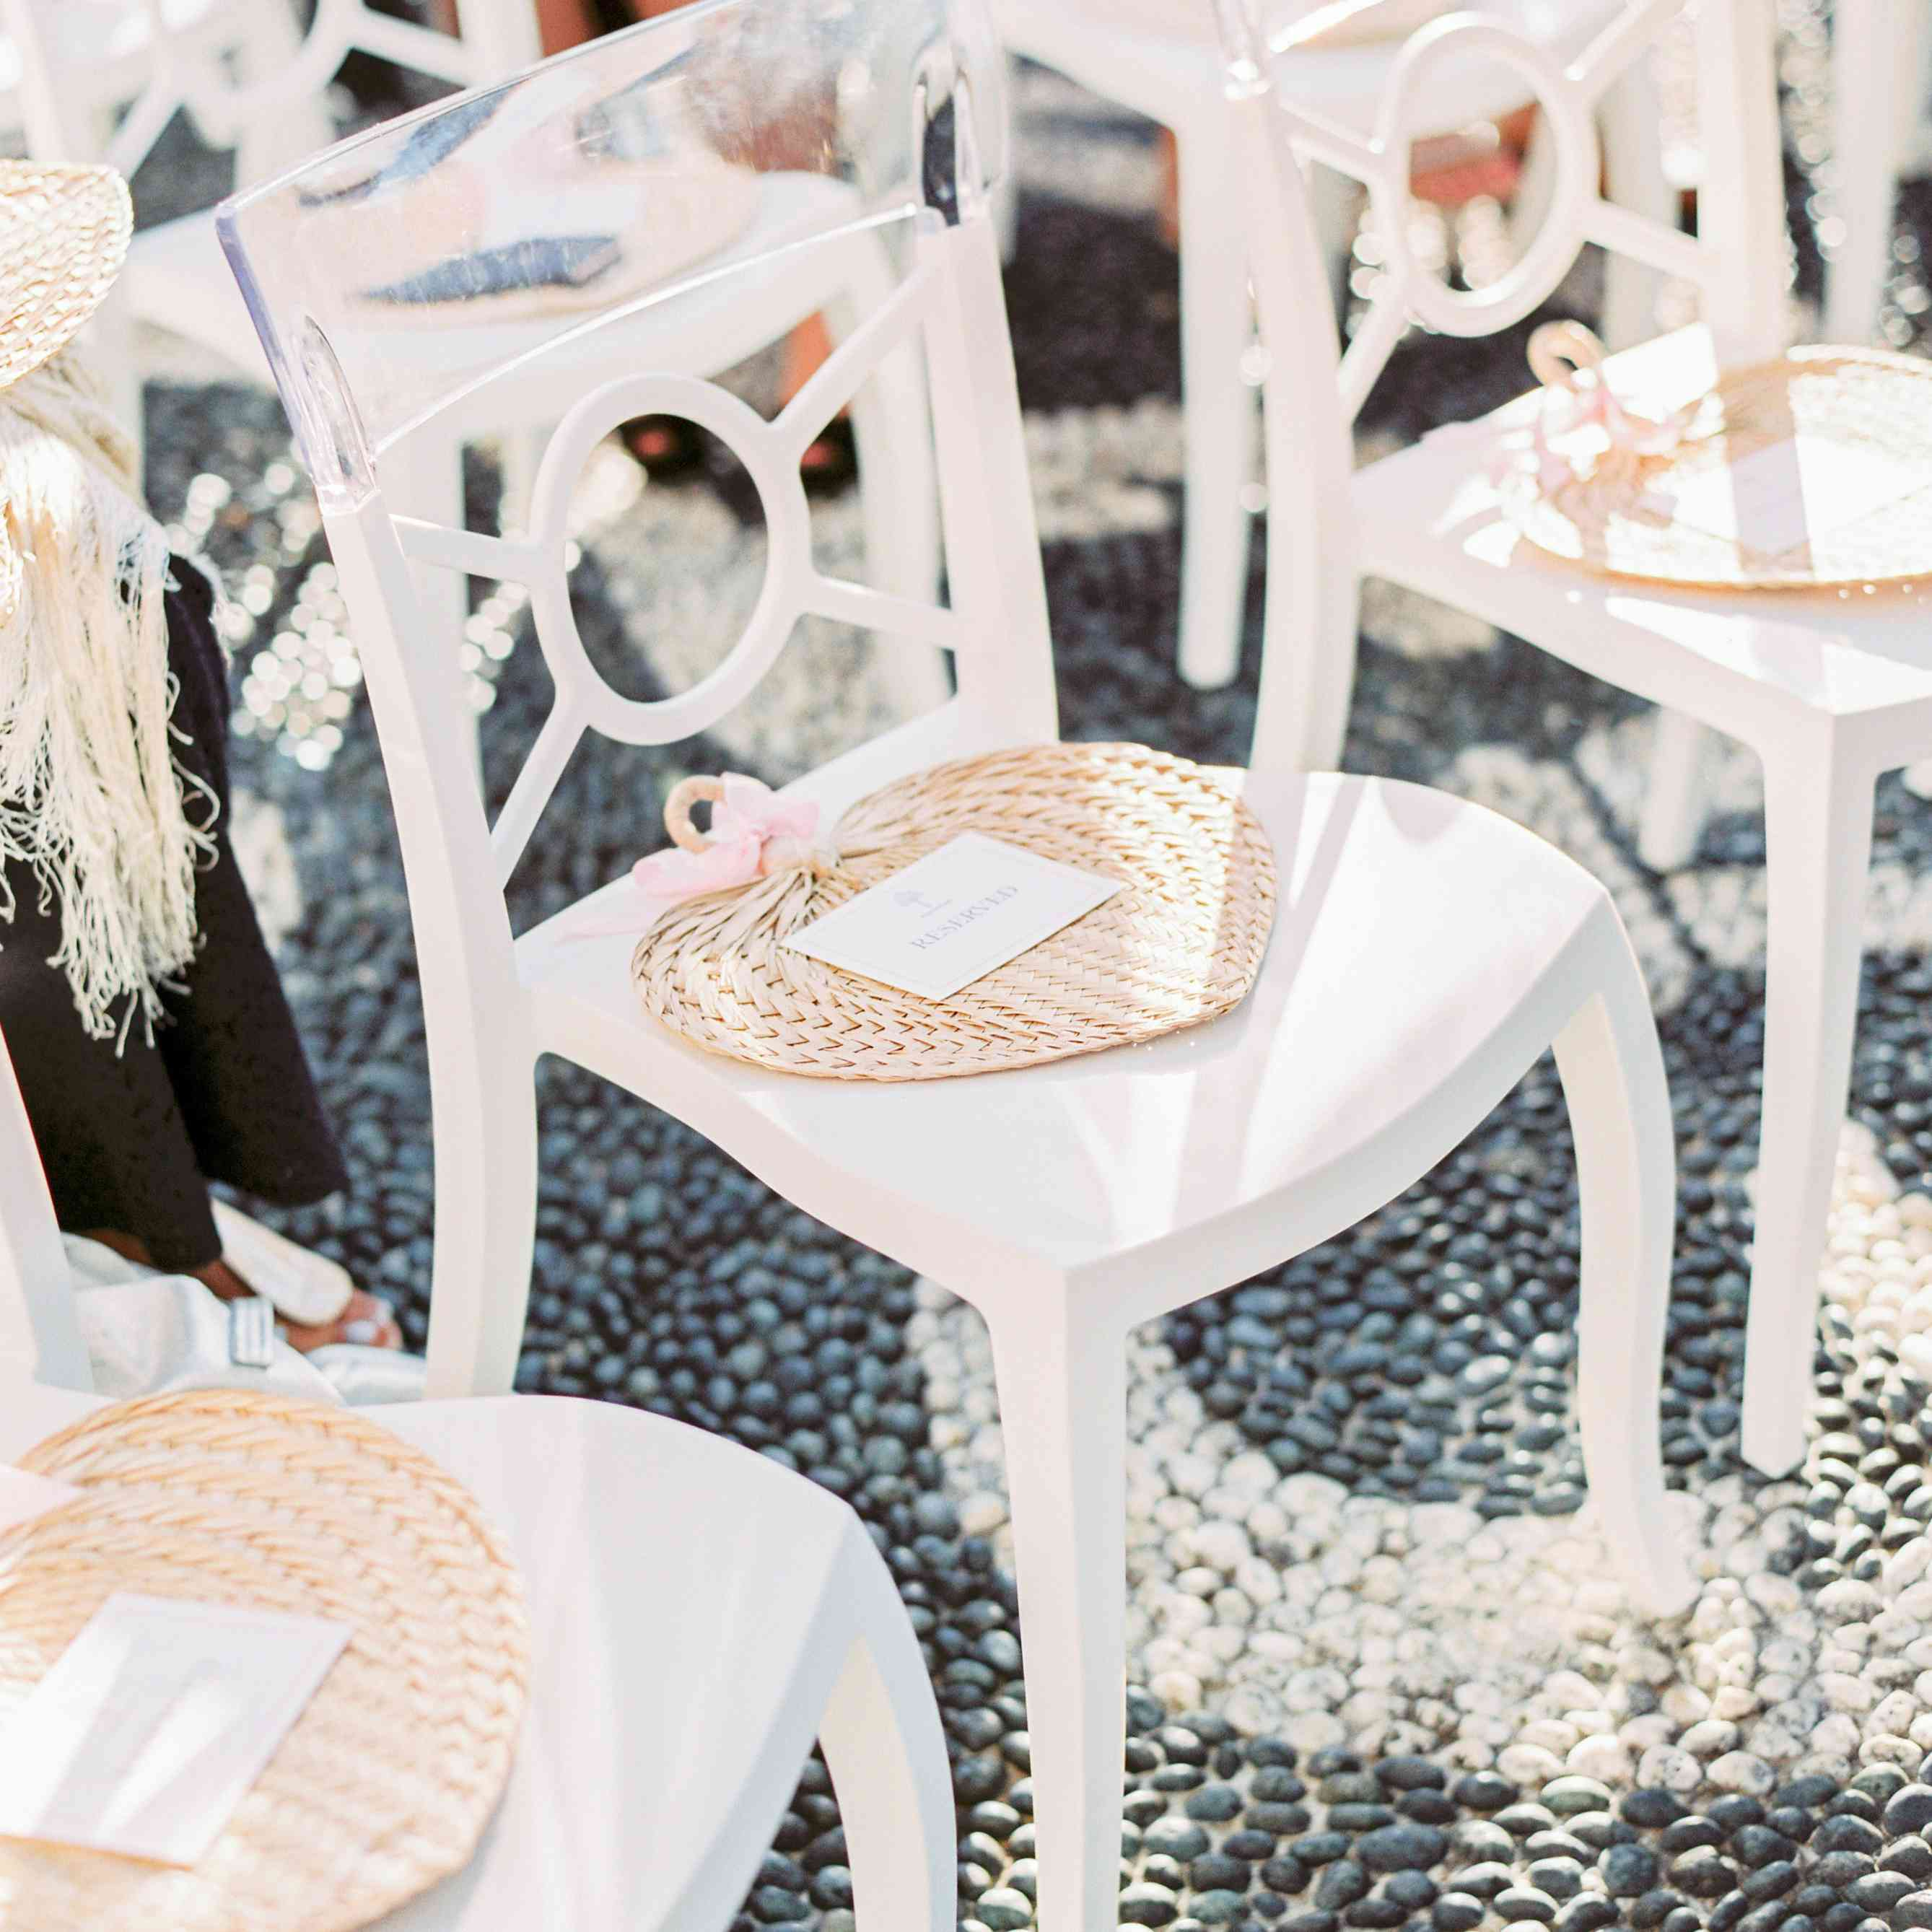 woven ceremony seating fans